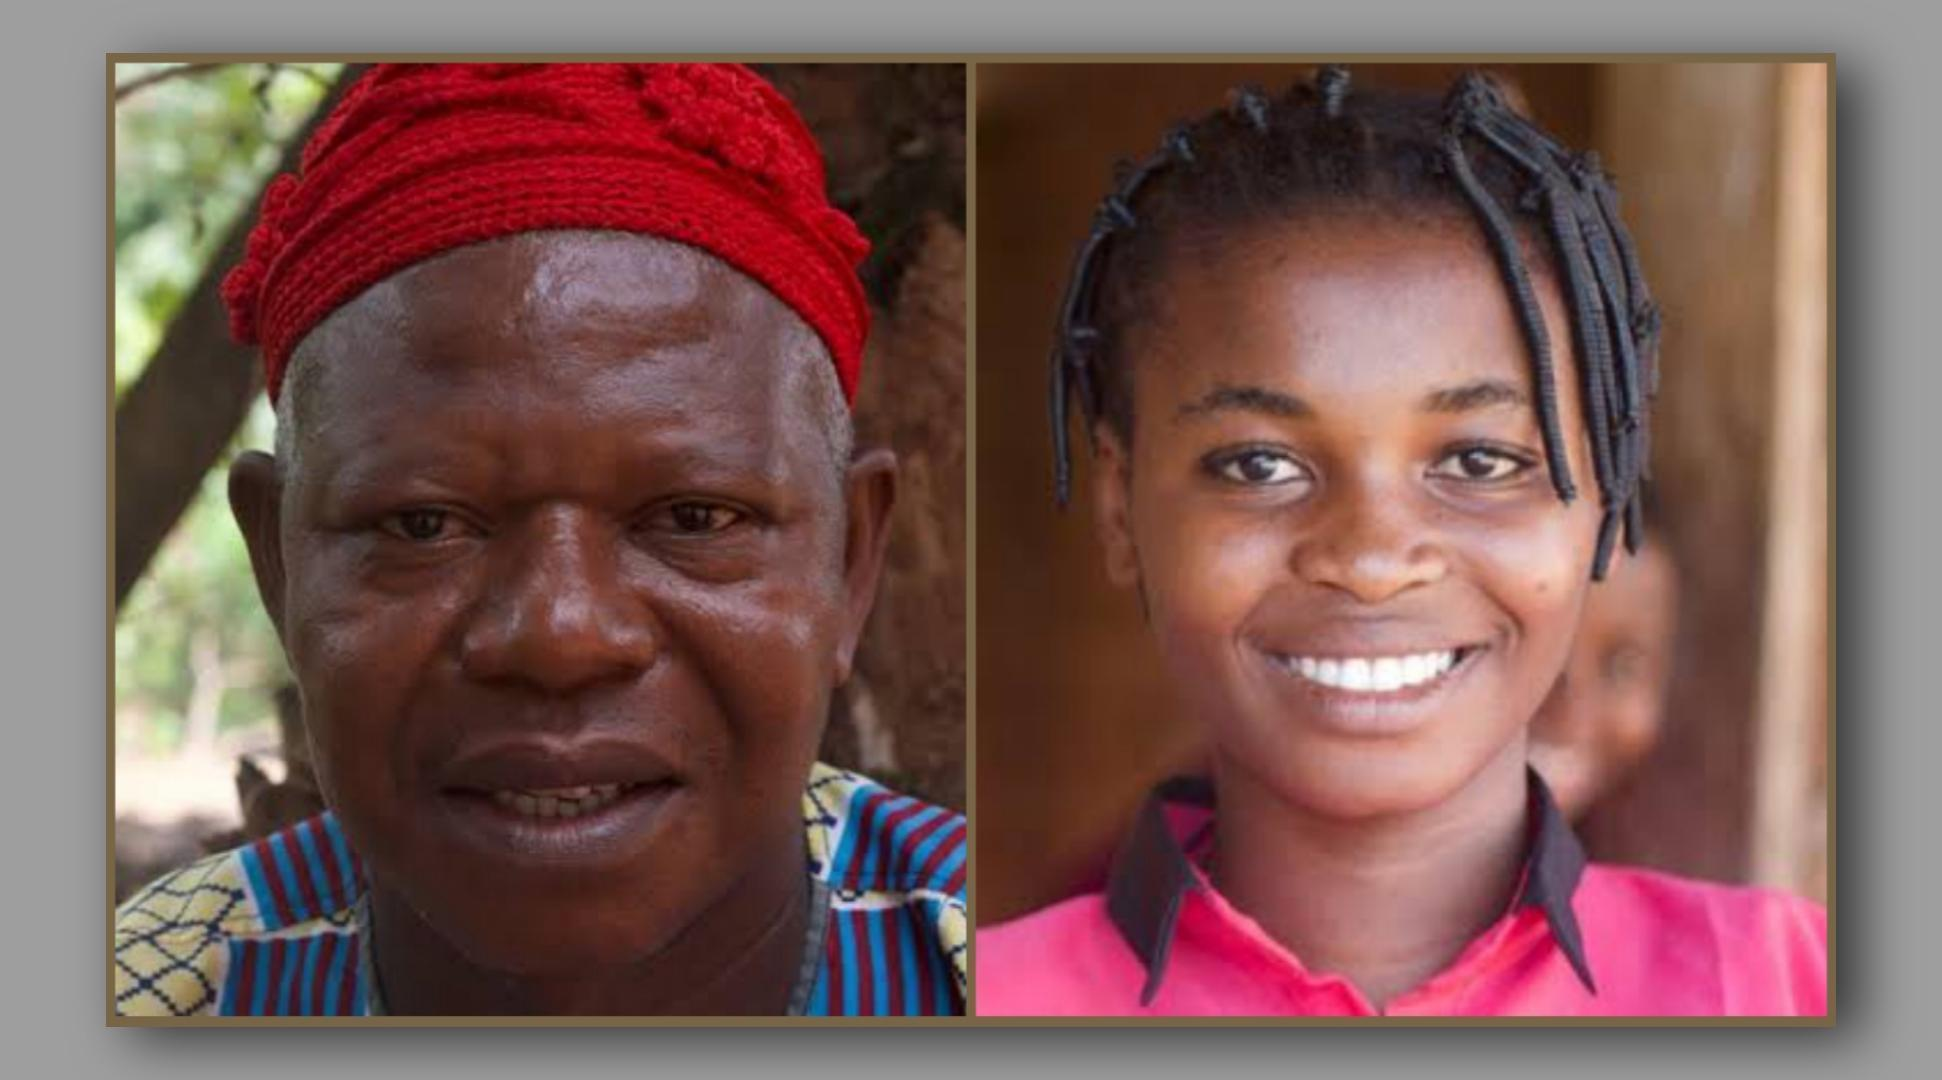 Ubang: The African community where men and women speak different languages